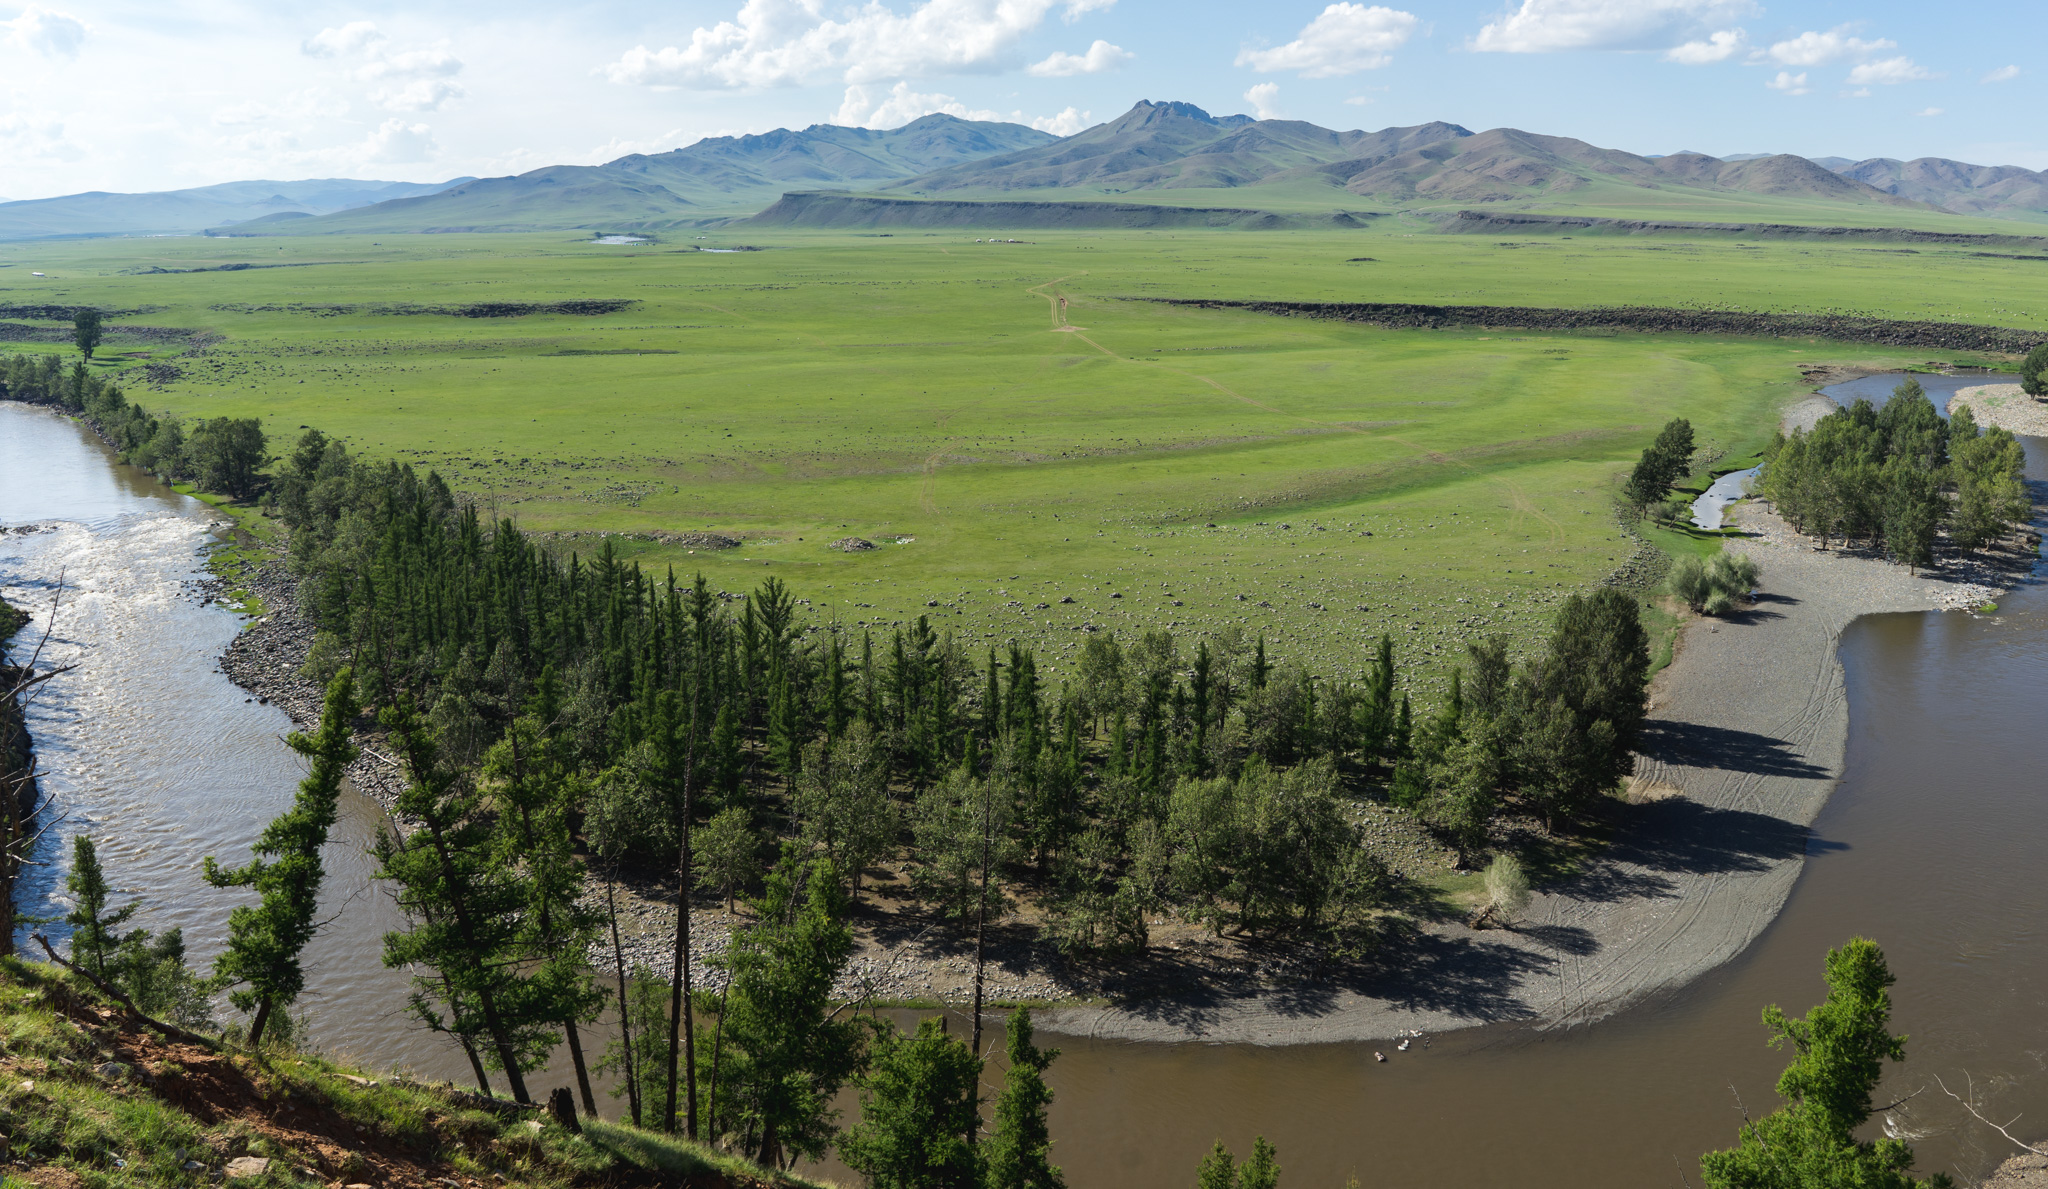 Orkhon Valley in Central Mongolia